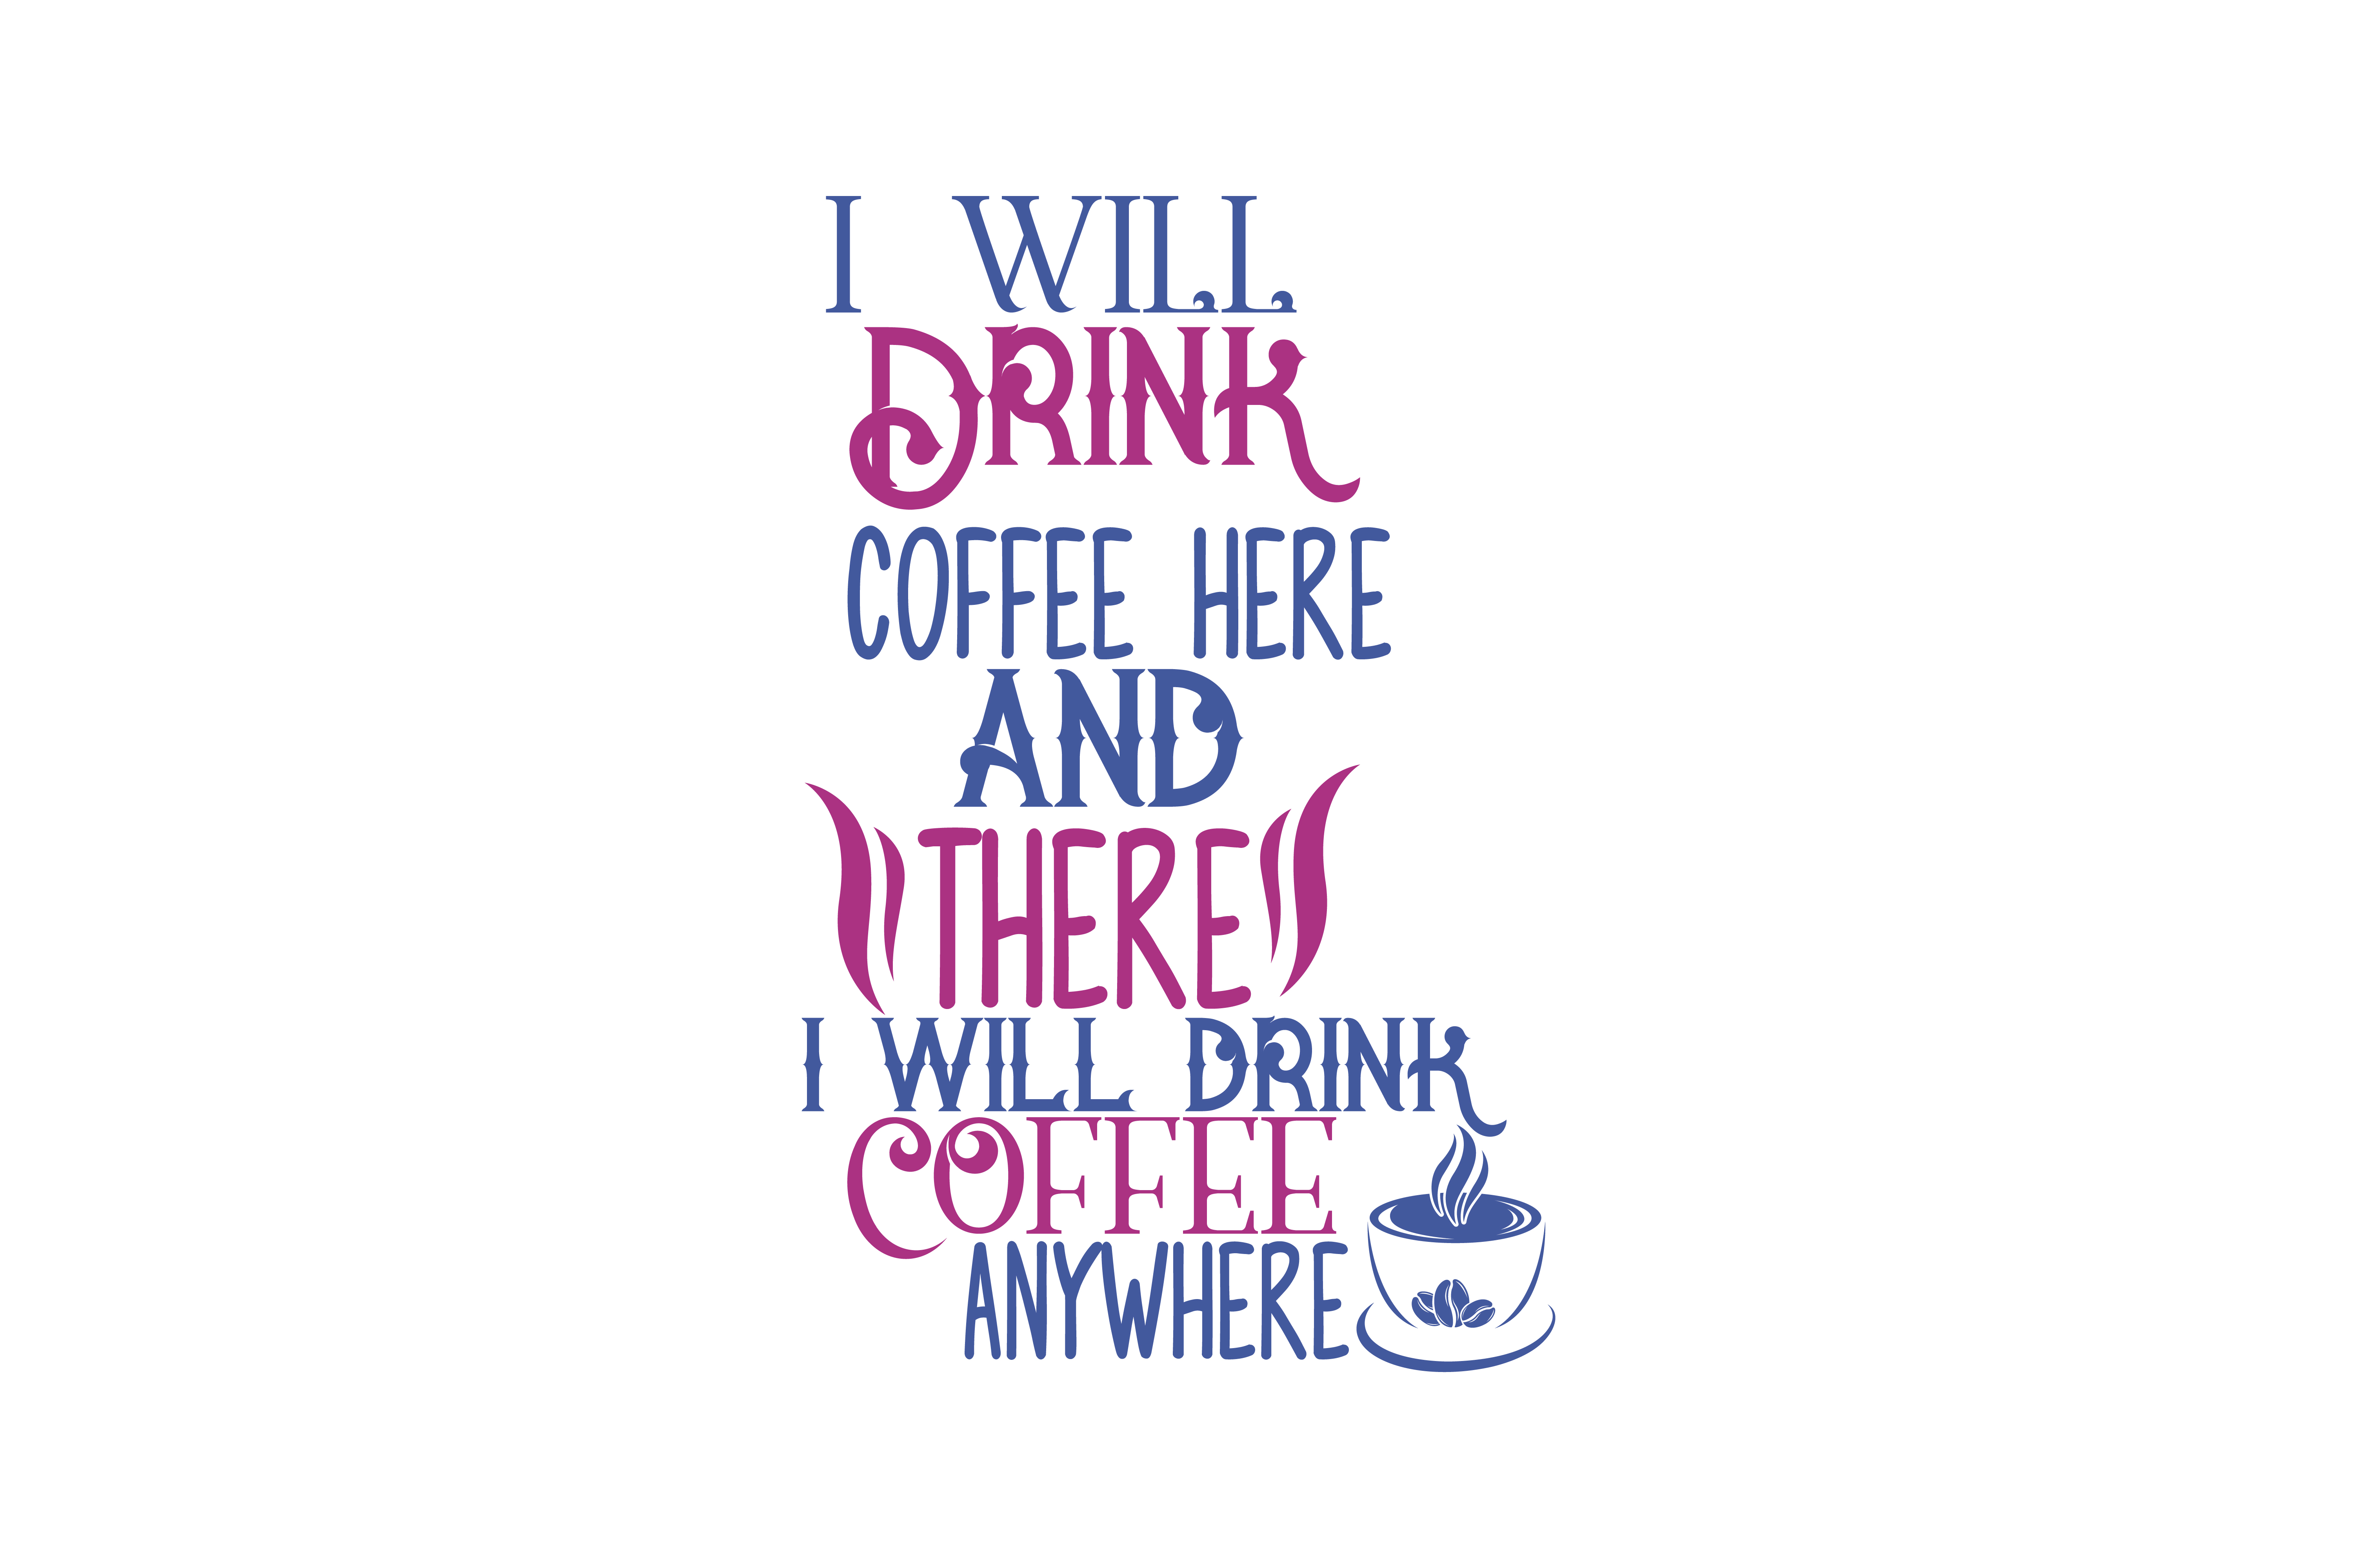 Download Free I Will Drink Coffee Here And There I Will Drink Coffee Anywhere for Cricut Explore, Silhouette and other cutting machines.